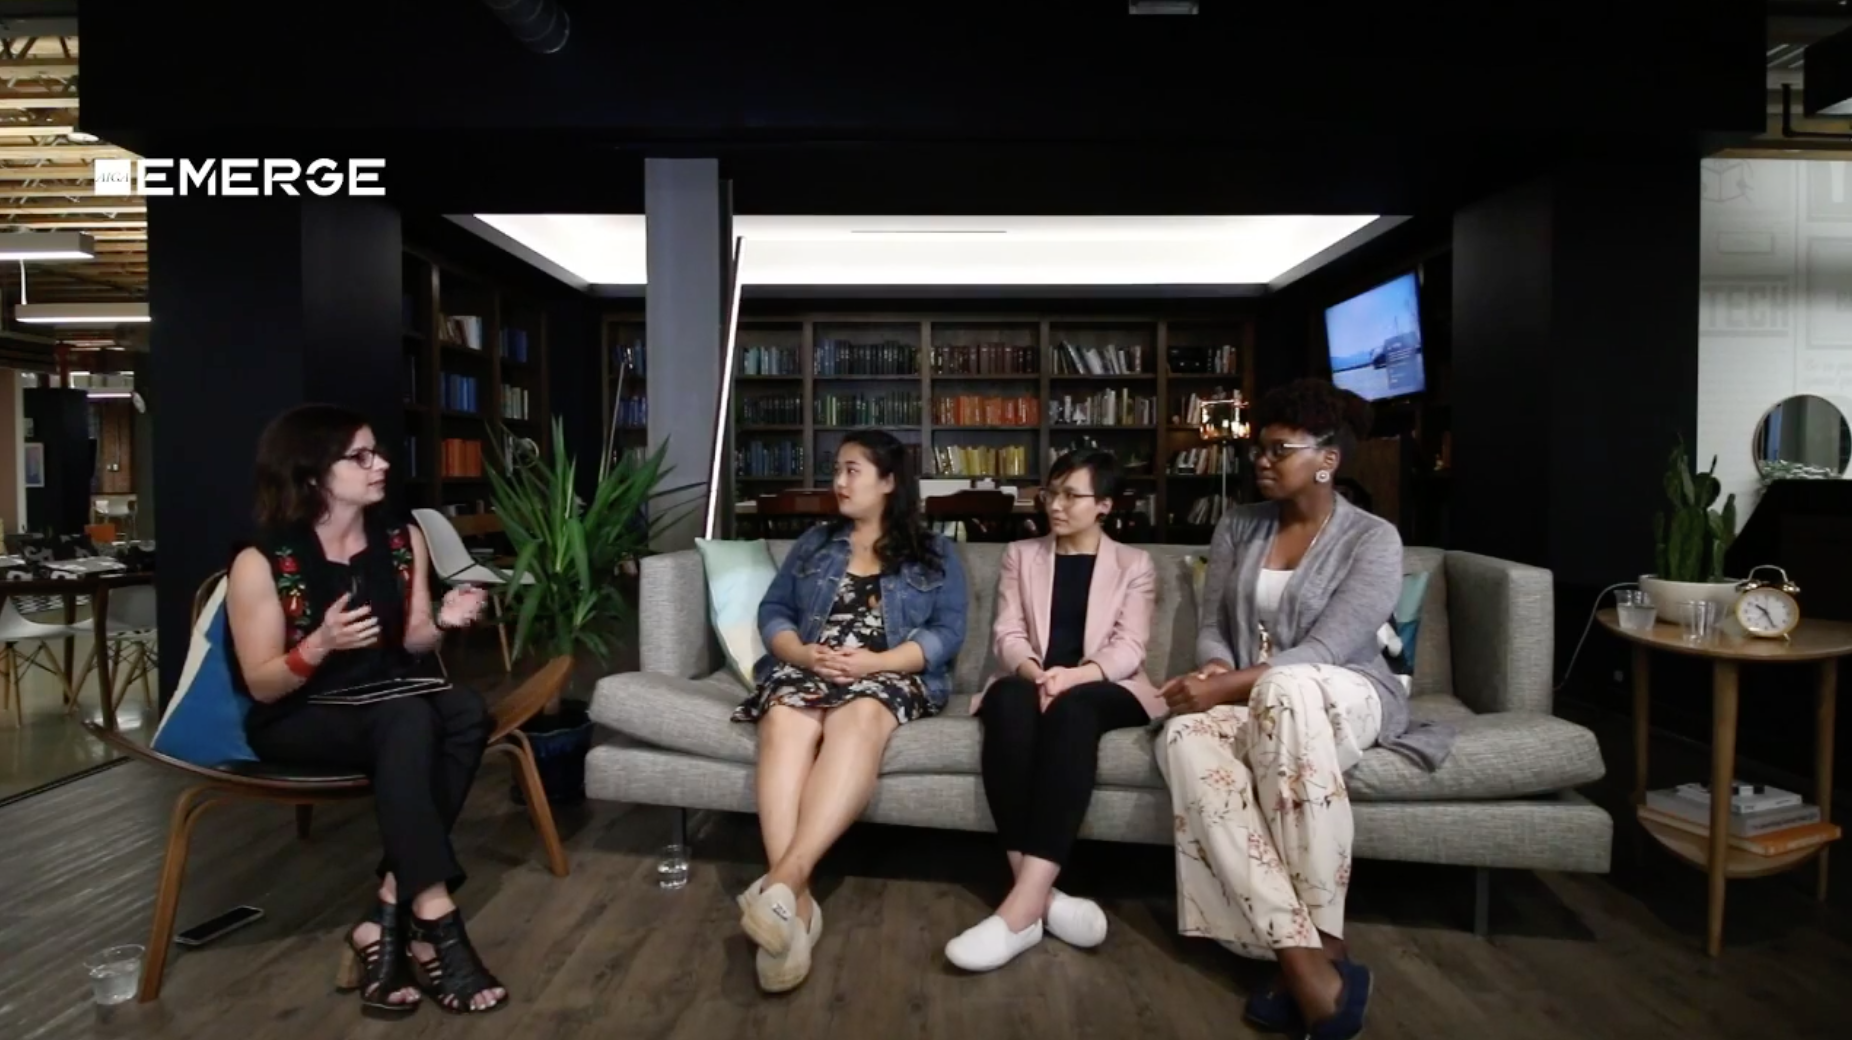 EMERGE #AMA interview Facebook Live by AIGA DC